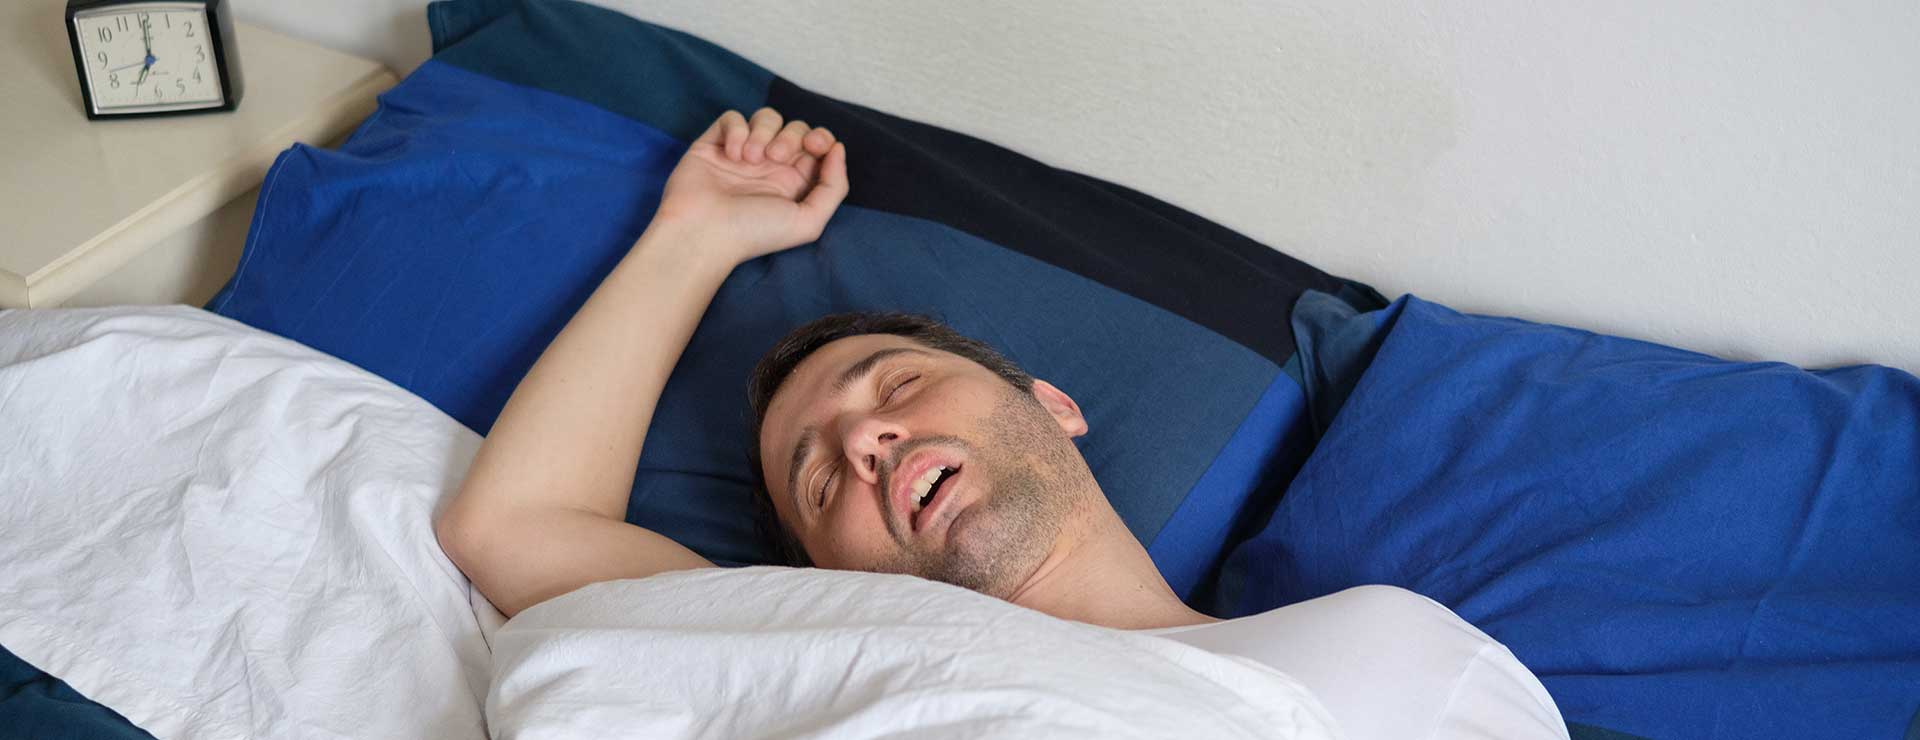 Why Do People Snore? Answers for Better Health | Johns Hopkins ...